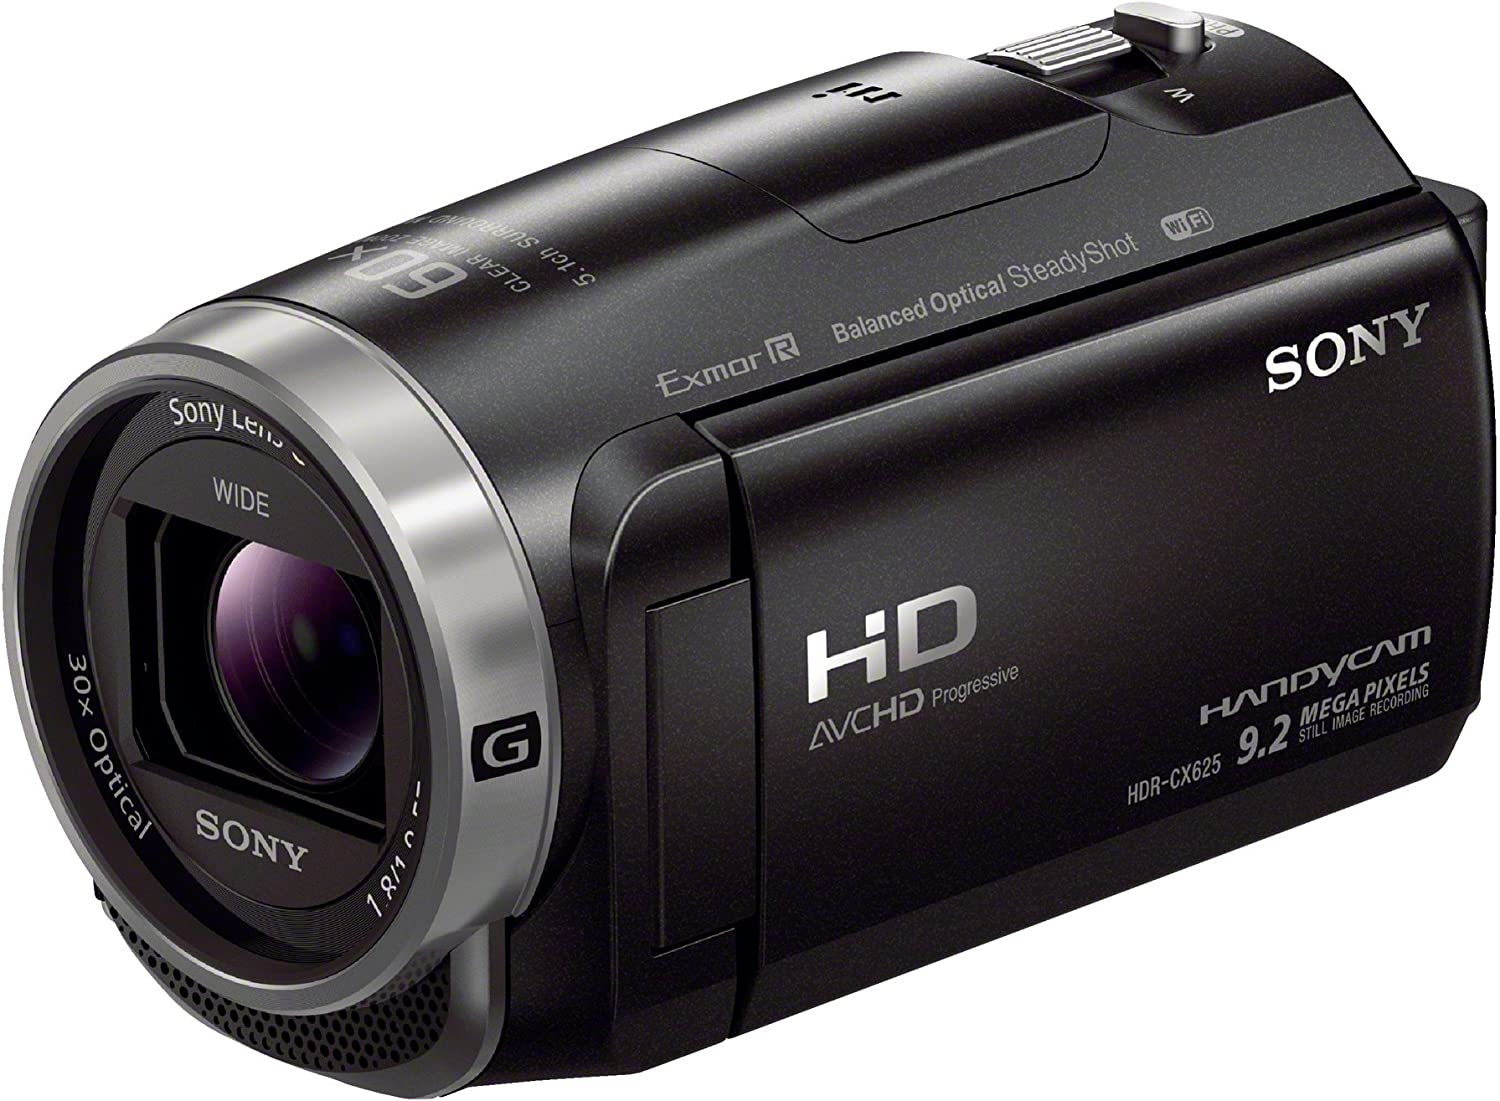 Sony »HDR-CX625B« Camcorder